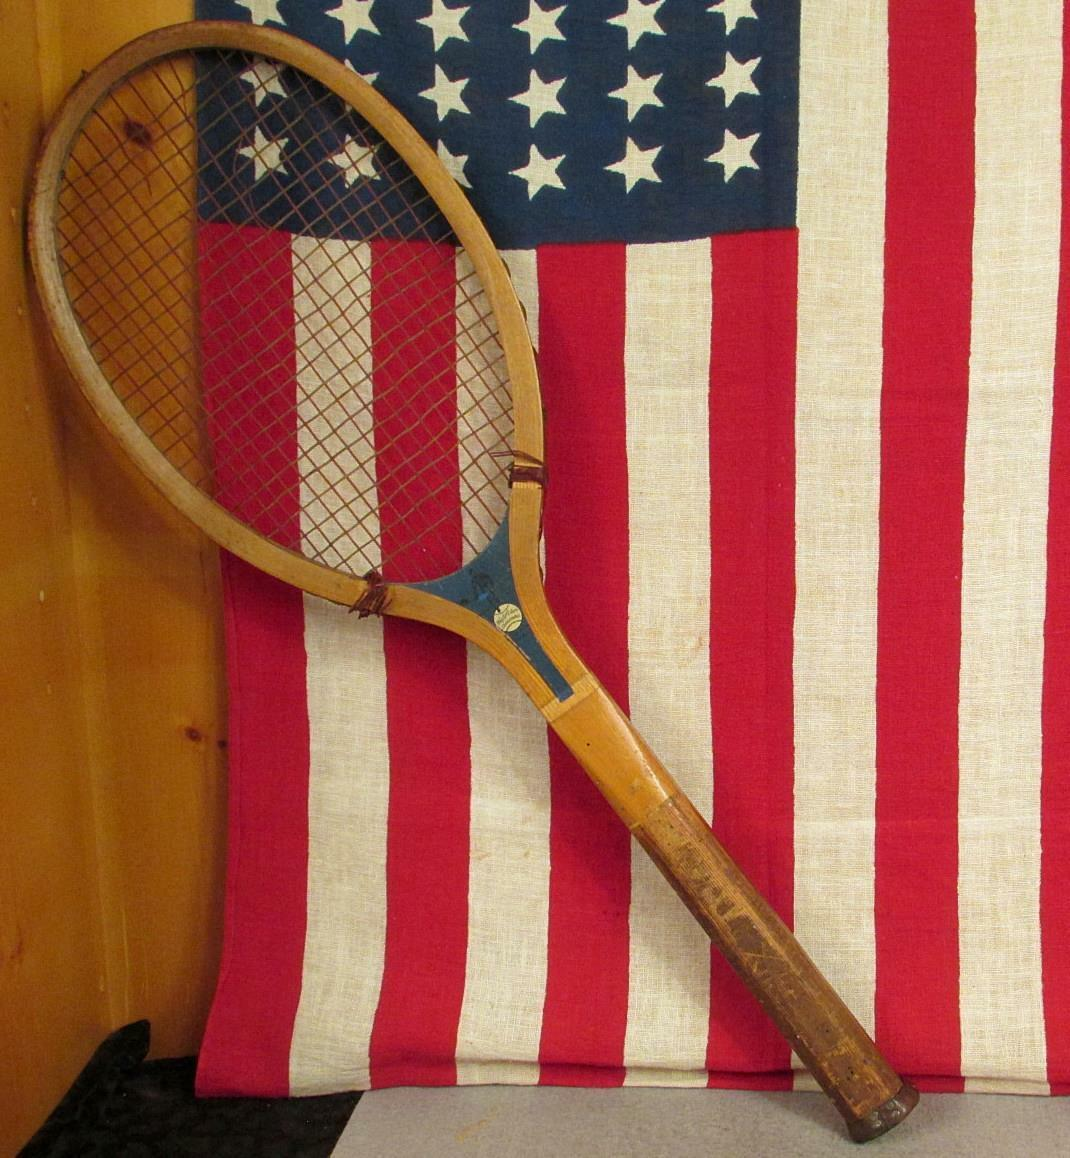 Vintage 1920s Wright & Ditson Wood Tennis Racquet Challenger Antique Display